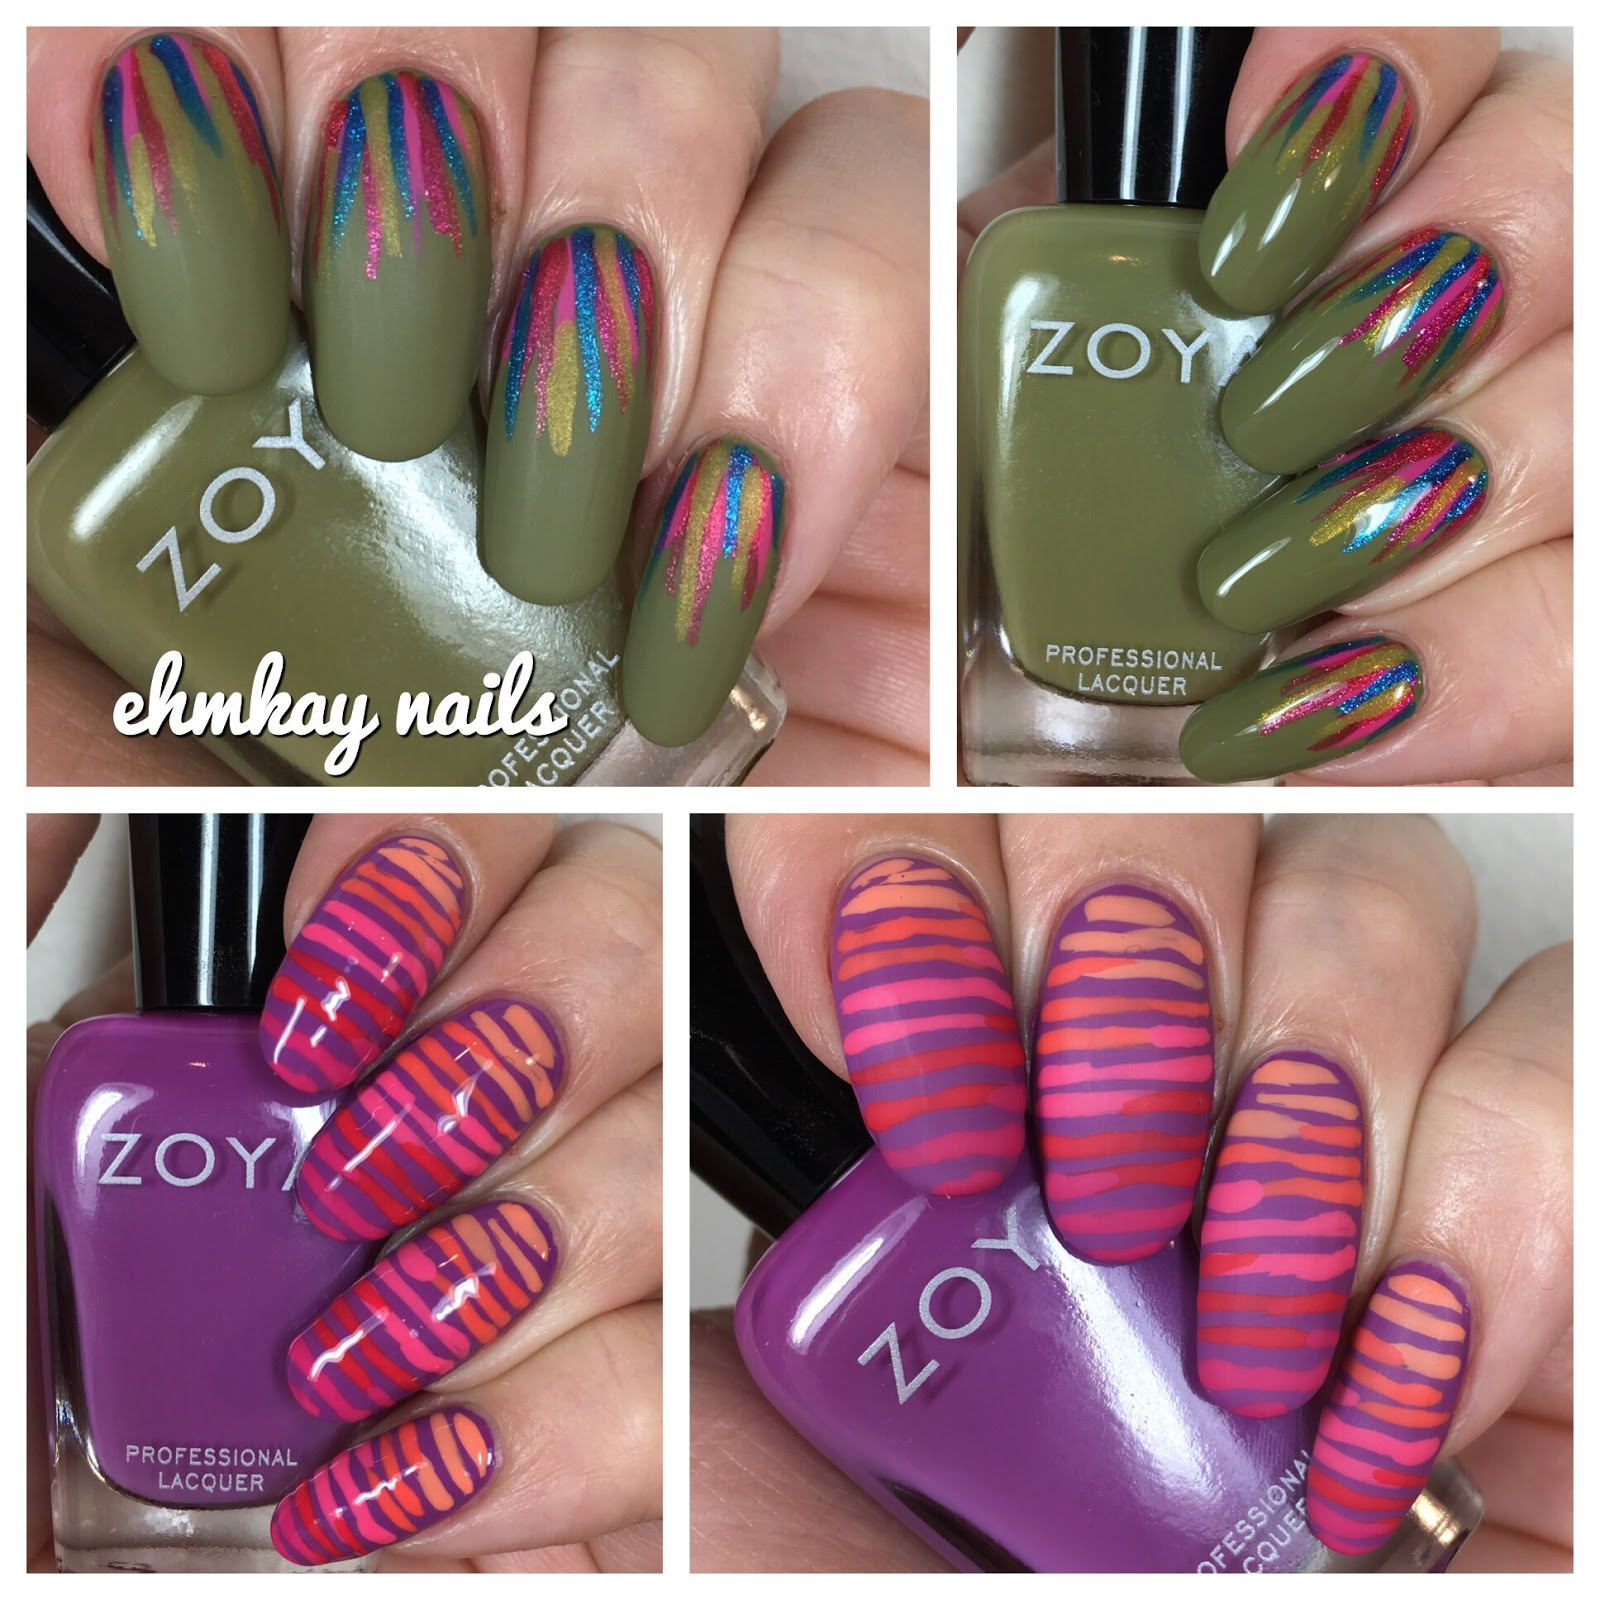 ehmkay nails: Zoya Wanderlust Collection, Line and Stripes Nail Art